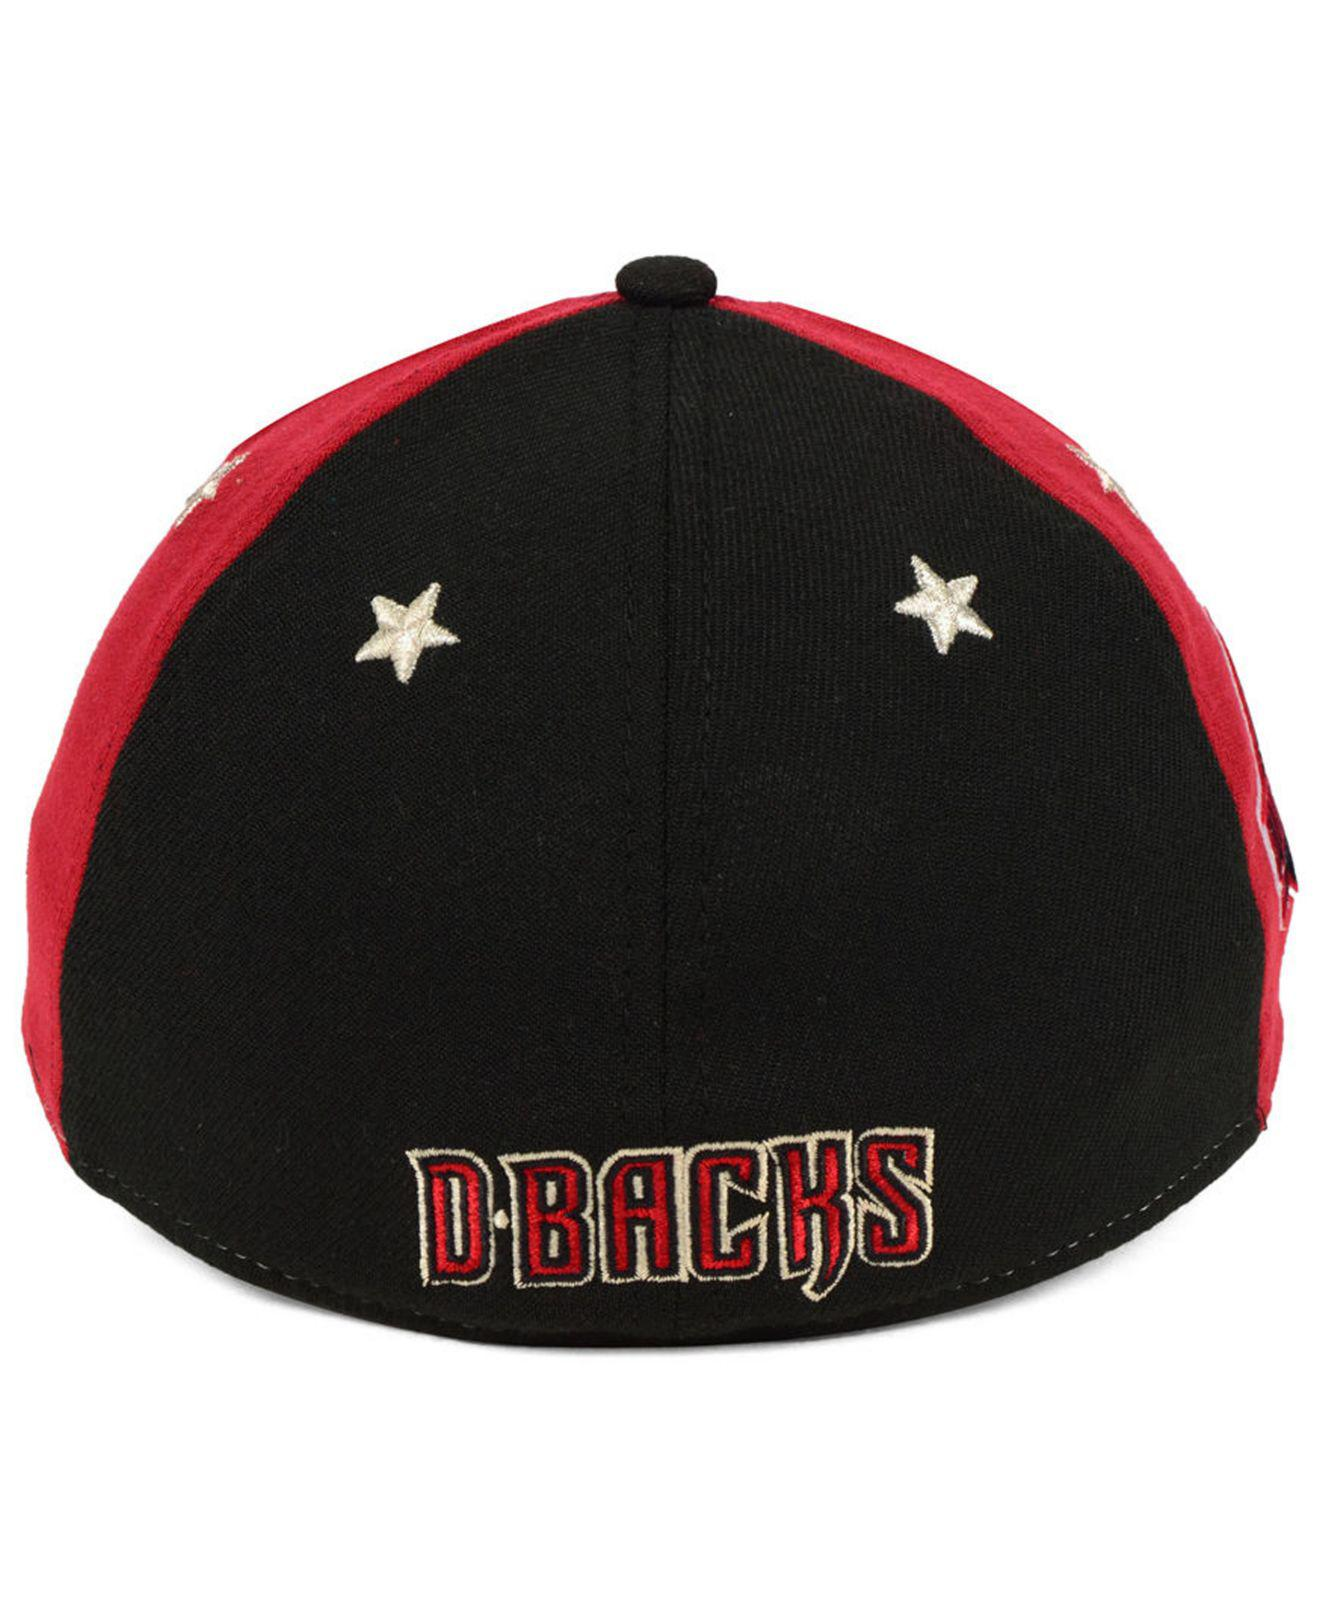 760fd78efc40a ... All Star Game 39thirty Stretch Fitted Cap 2018 for Men -. View  fullscreen